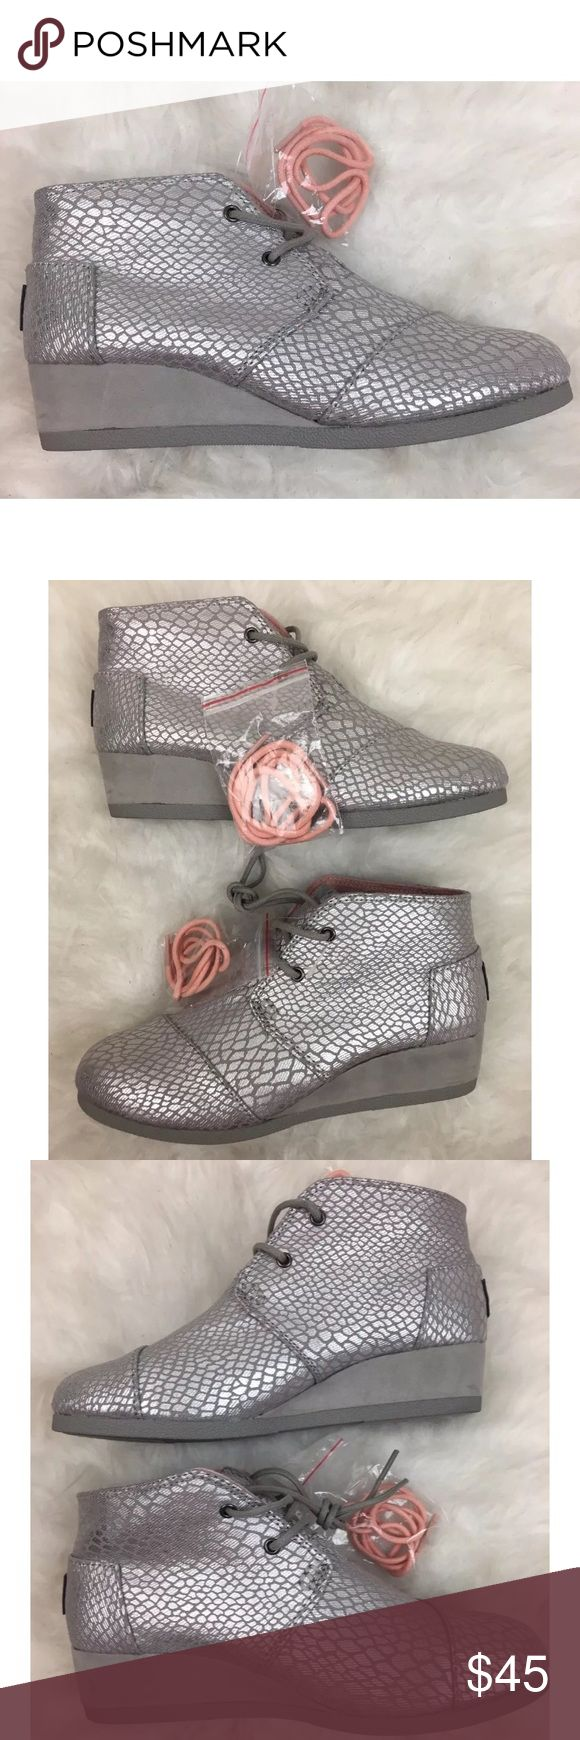 """Toms Desert Wedge Metallic Silver Youth Sz 4 New without box. Comes with extra pink laces. Heel height is 1 1/2"""" TOMS Shoes Boots"""